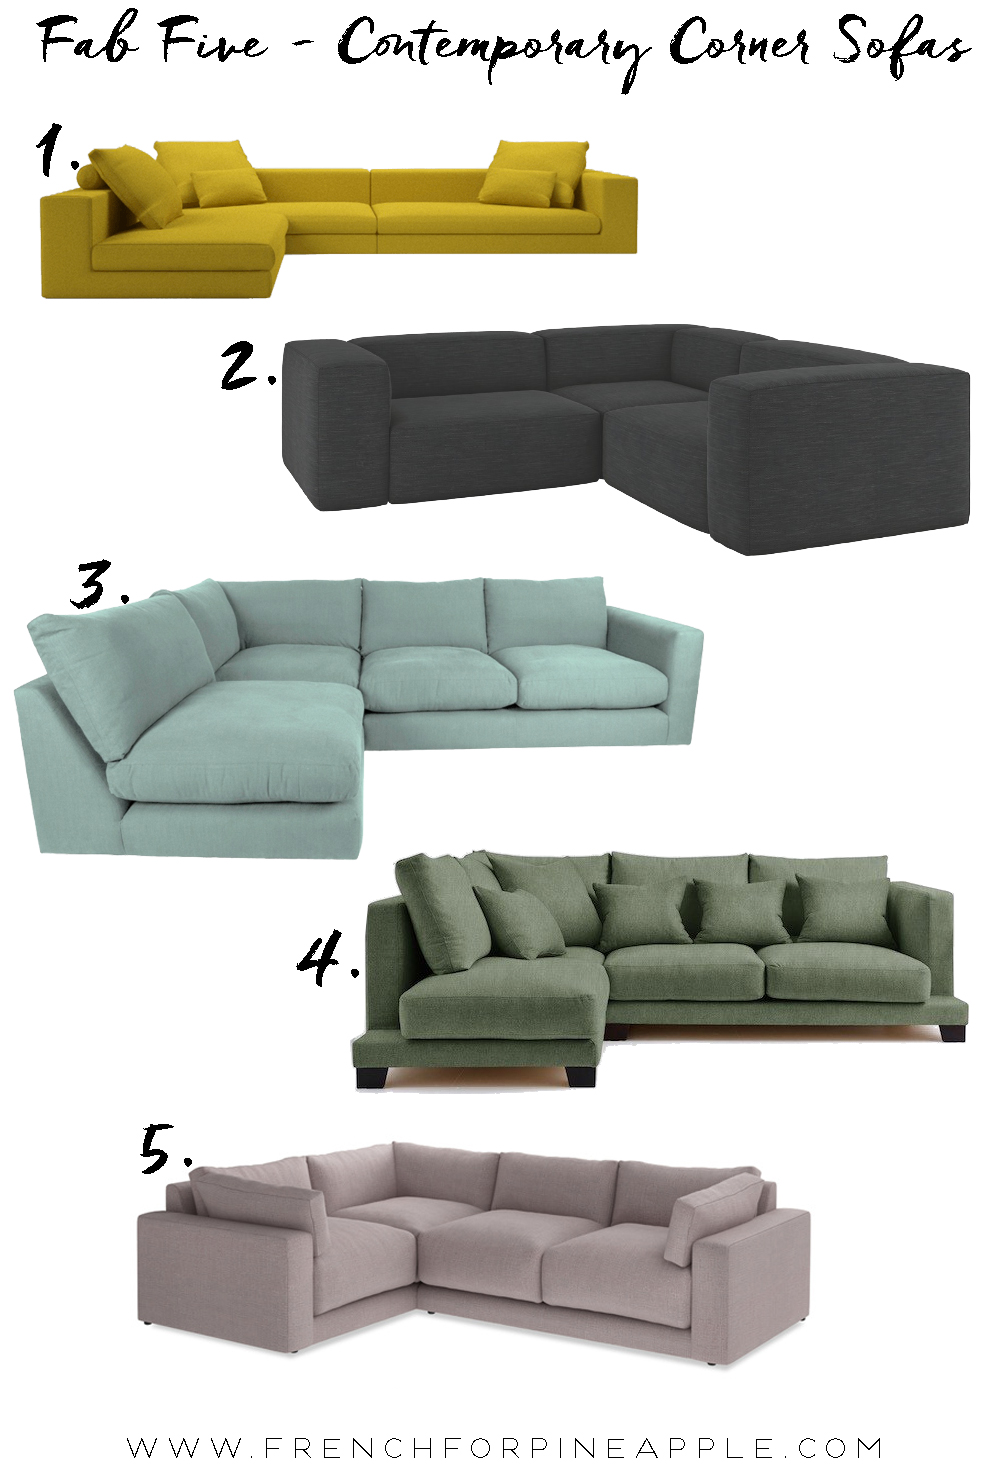 Fab Five Contemporary Sofas - French For Pineapple Blog